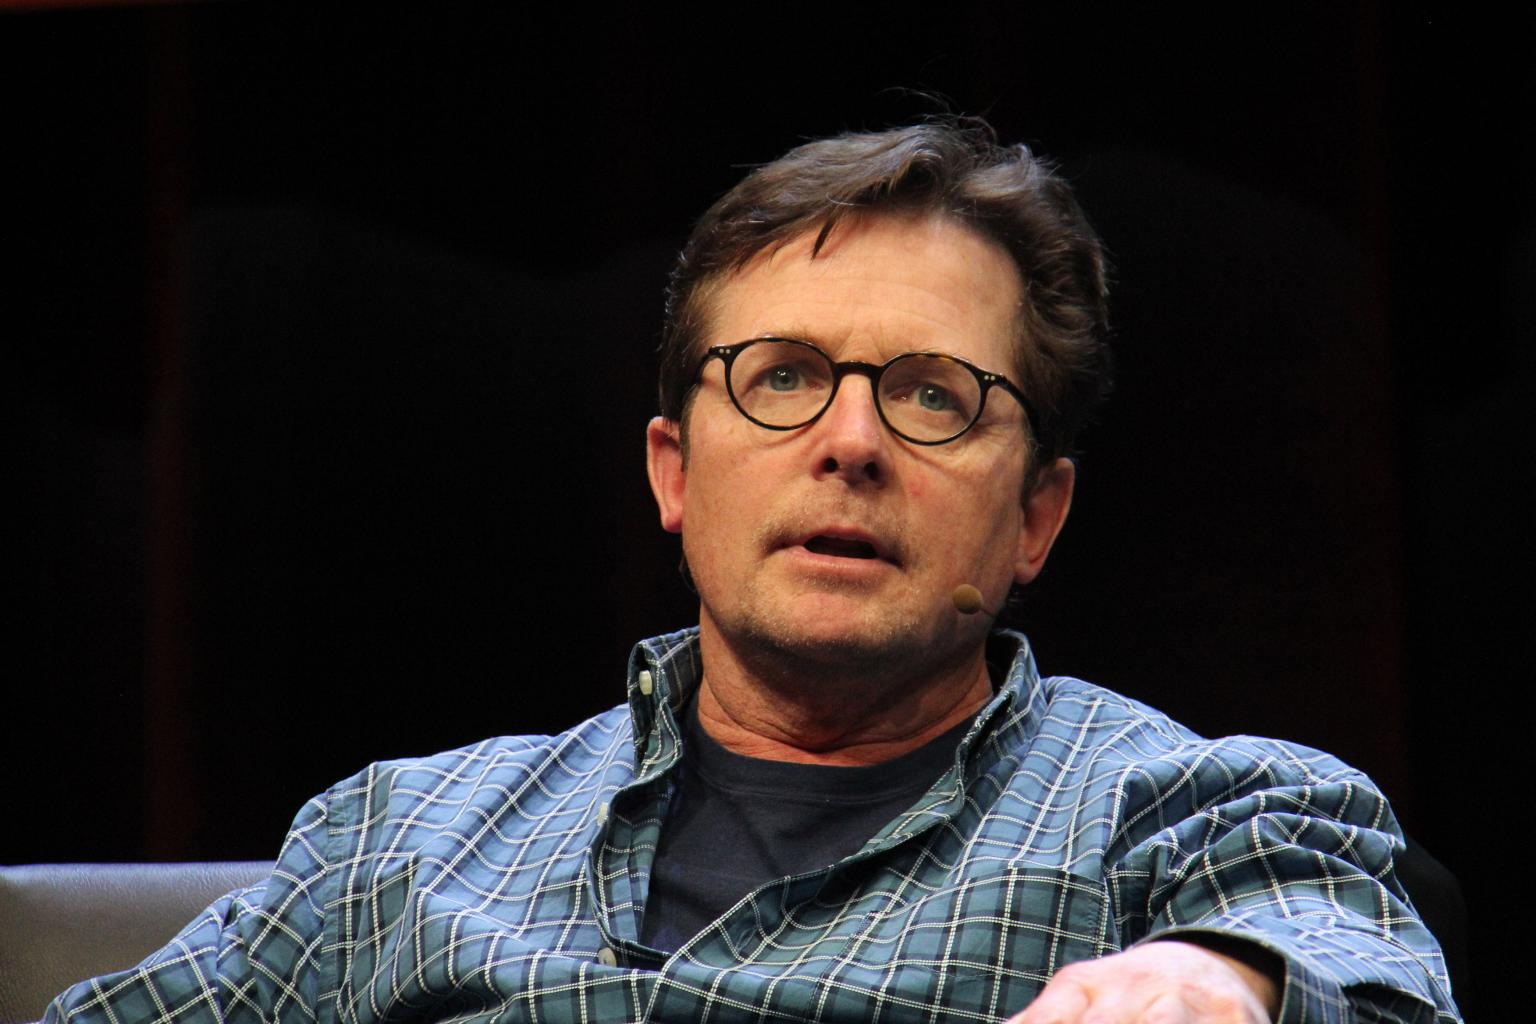 Michael J. Fox On His Parkinson's Battle: 'I Was Supposed To Be Pretty Much Disabled By Now'